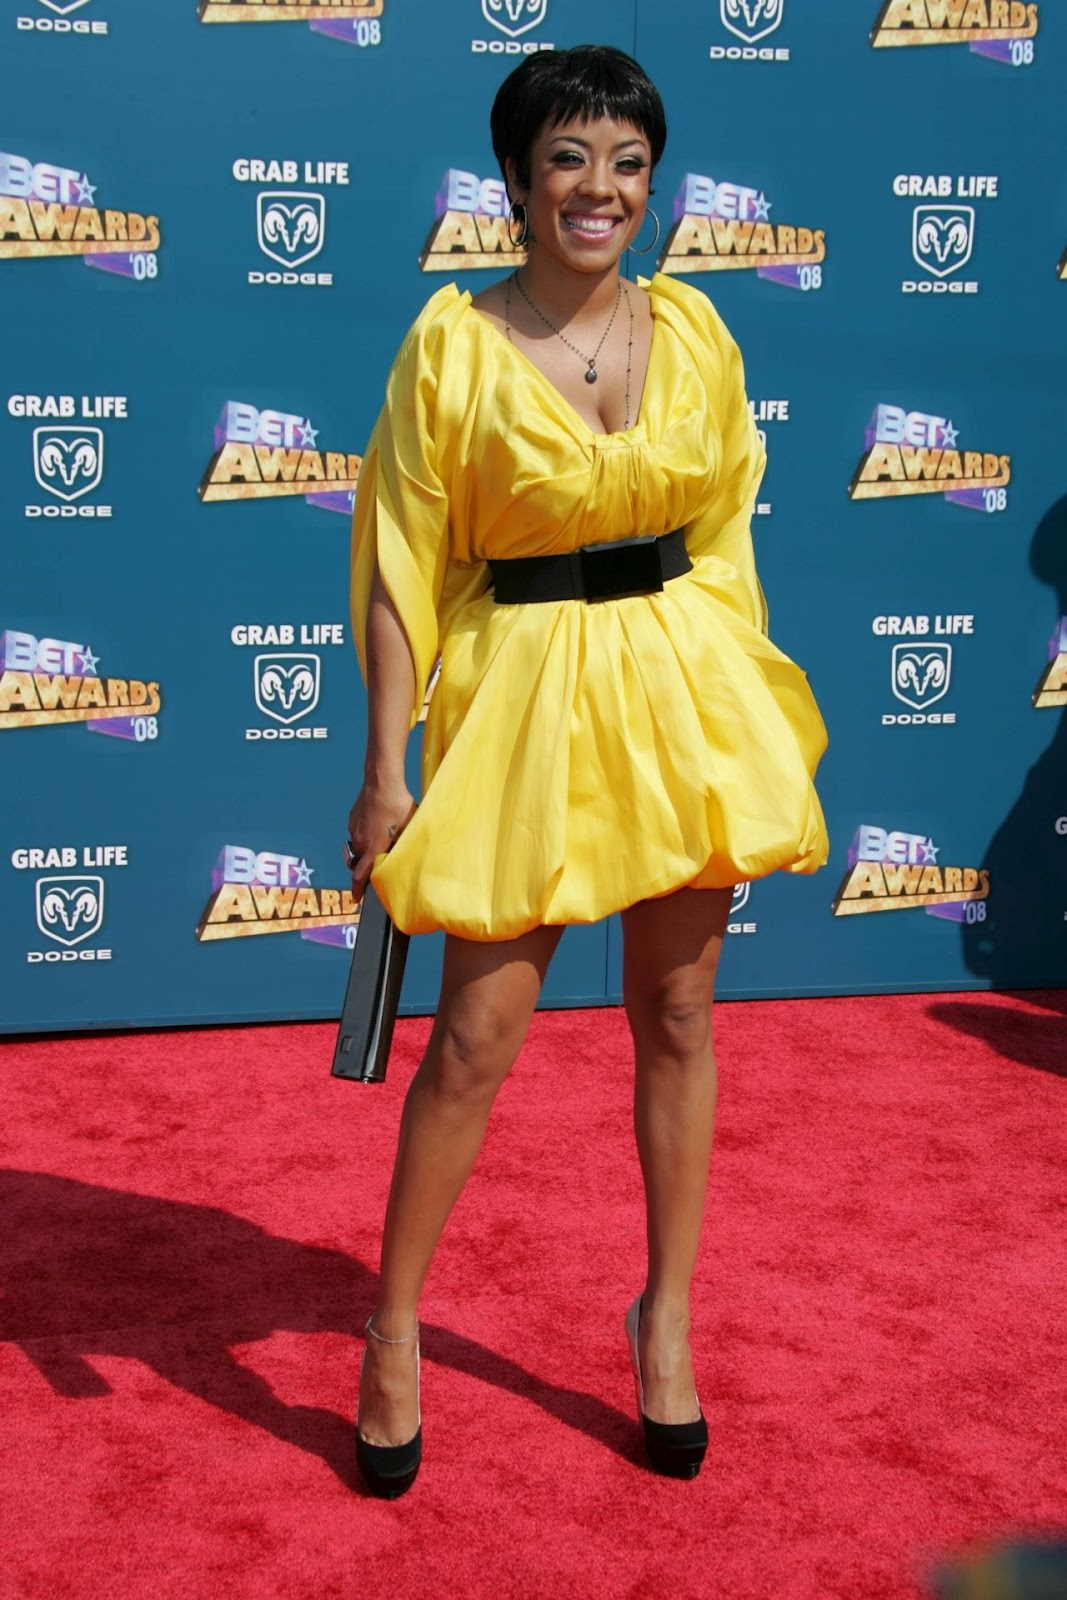 Keyshia Cole Hairstyle Trends: Keyshia Cole Picture Gallery